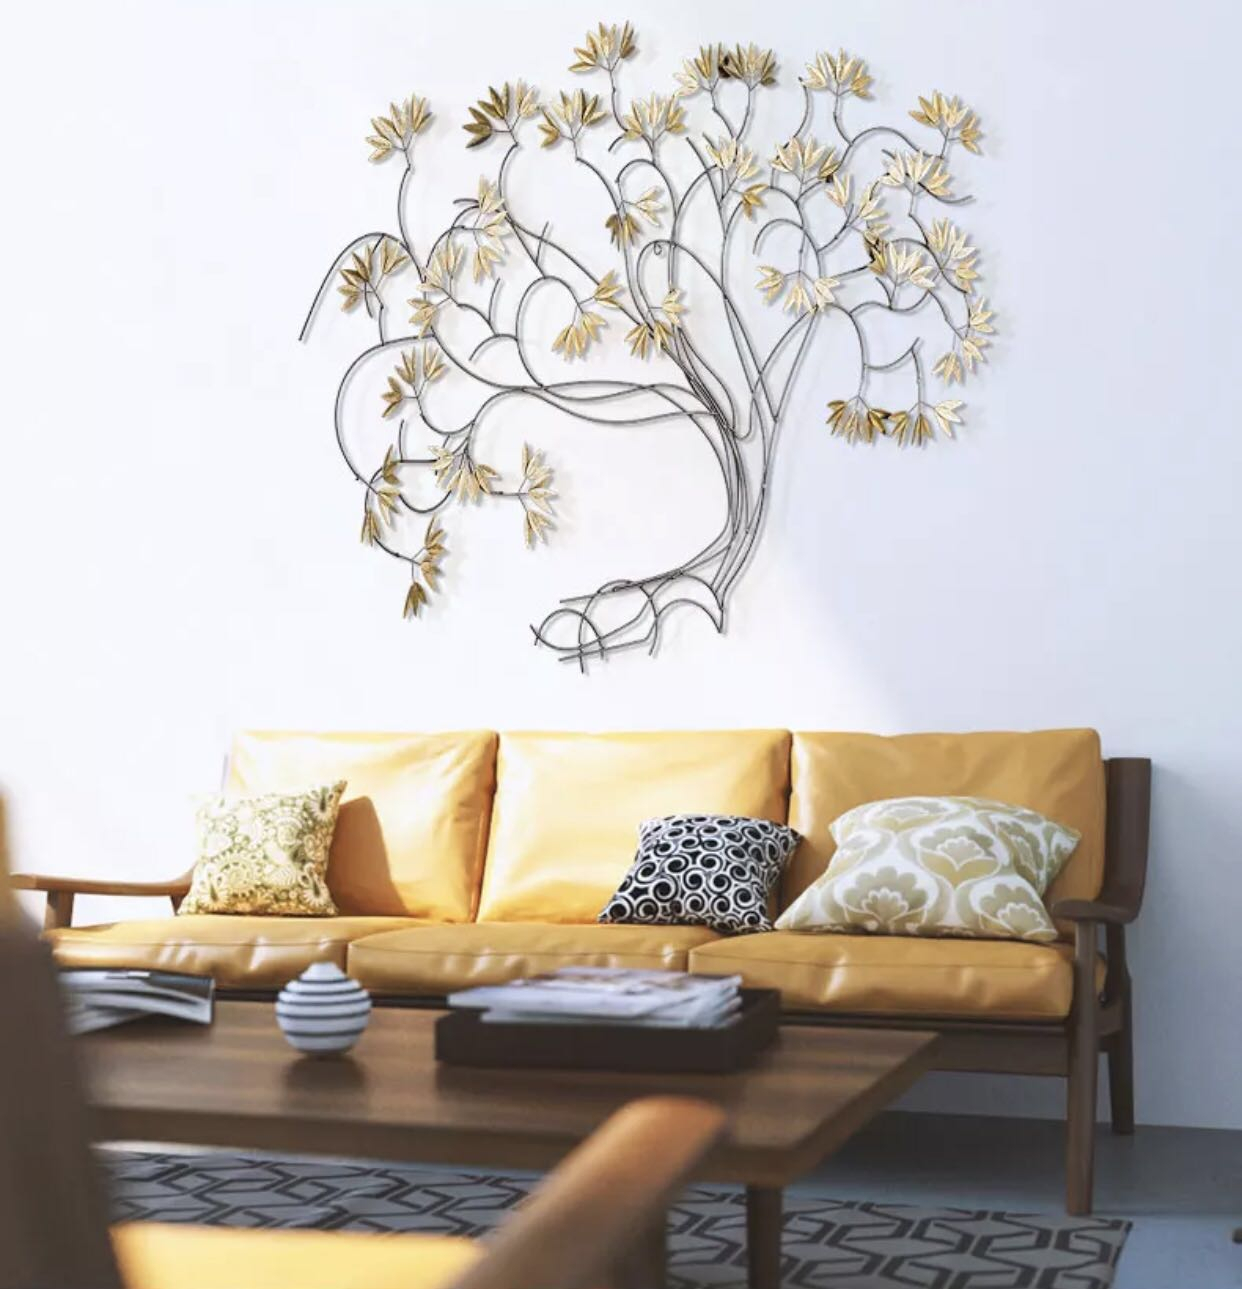 Most Current Raheem Flowers Metal Wall Decor In Maple Leaves – Metal Wall Art Decor Painting, Furniture, Home Decor (View 10 of 20)